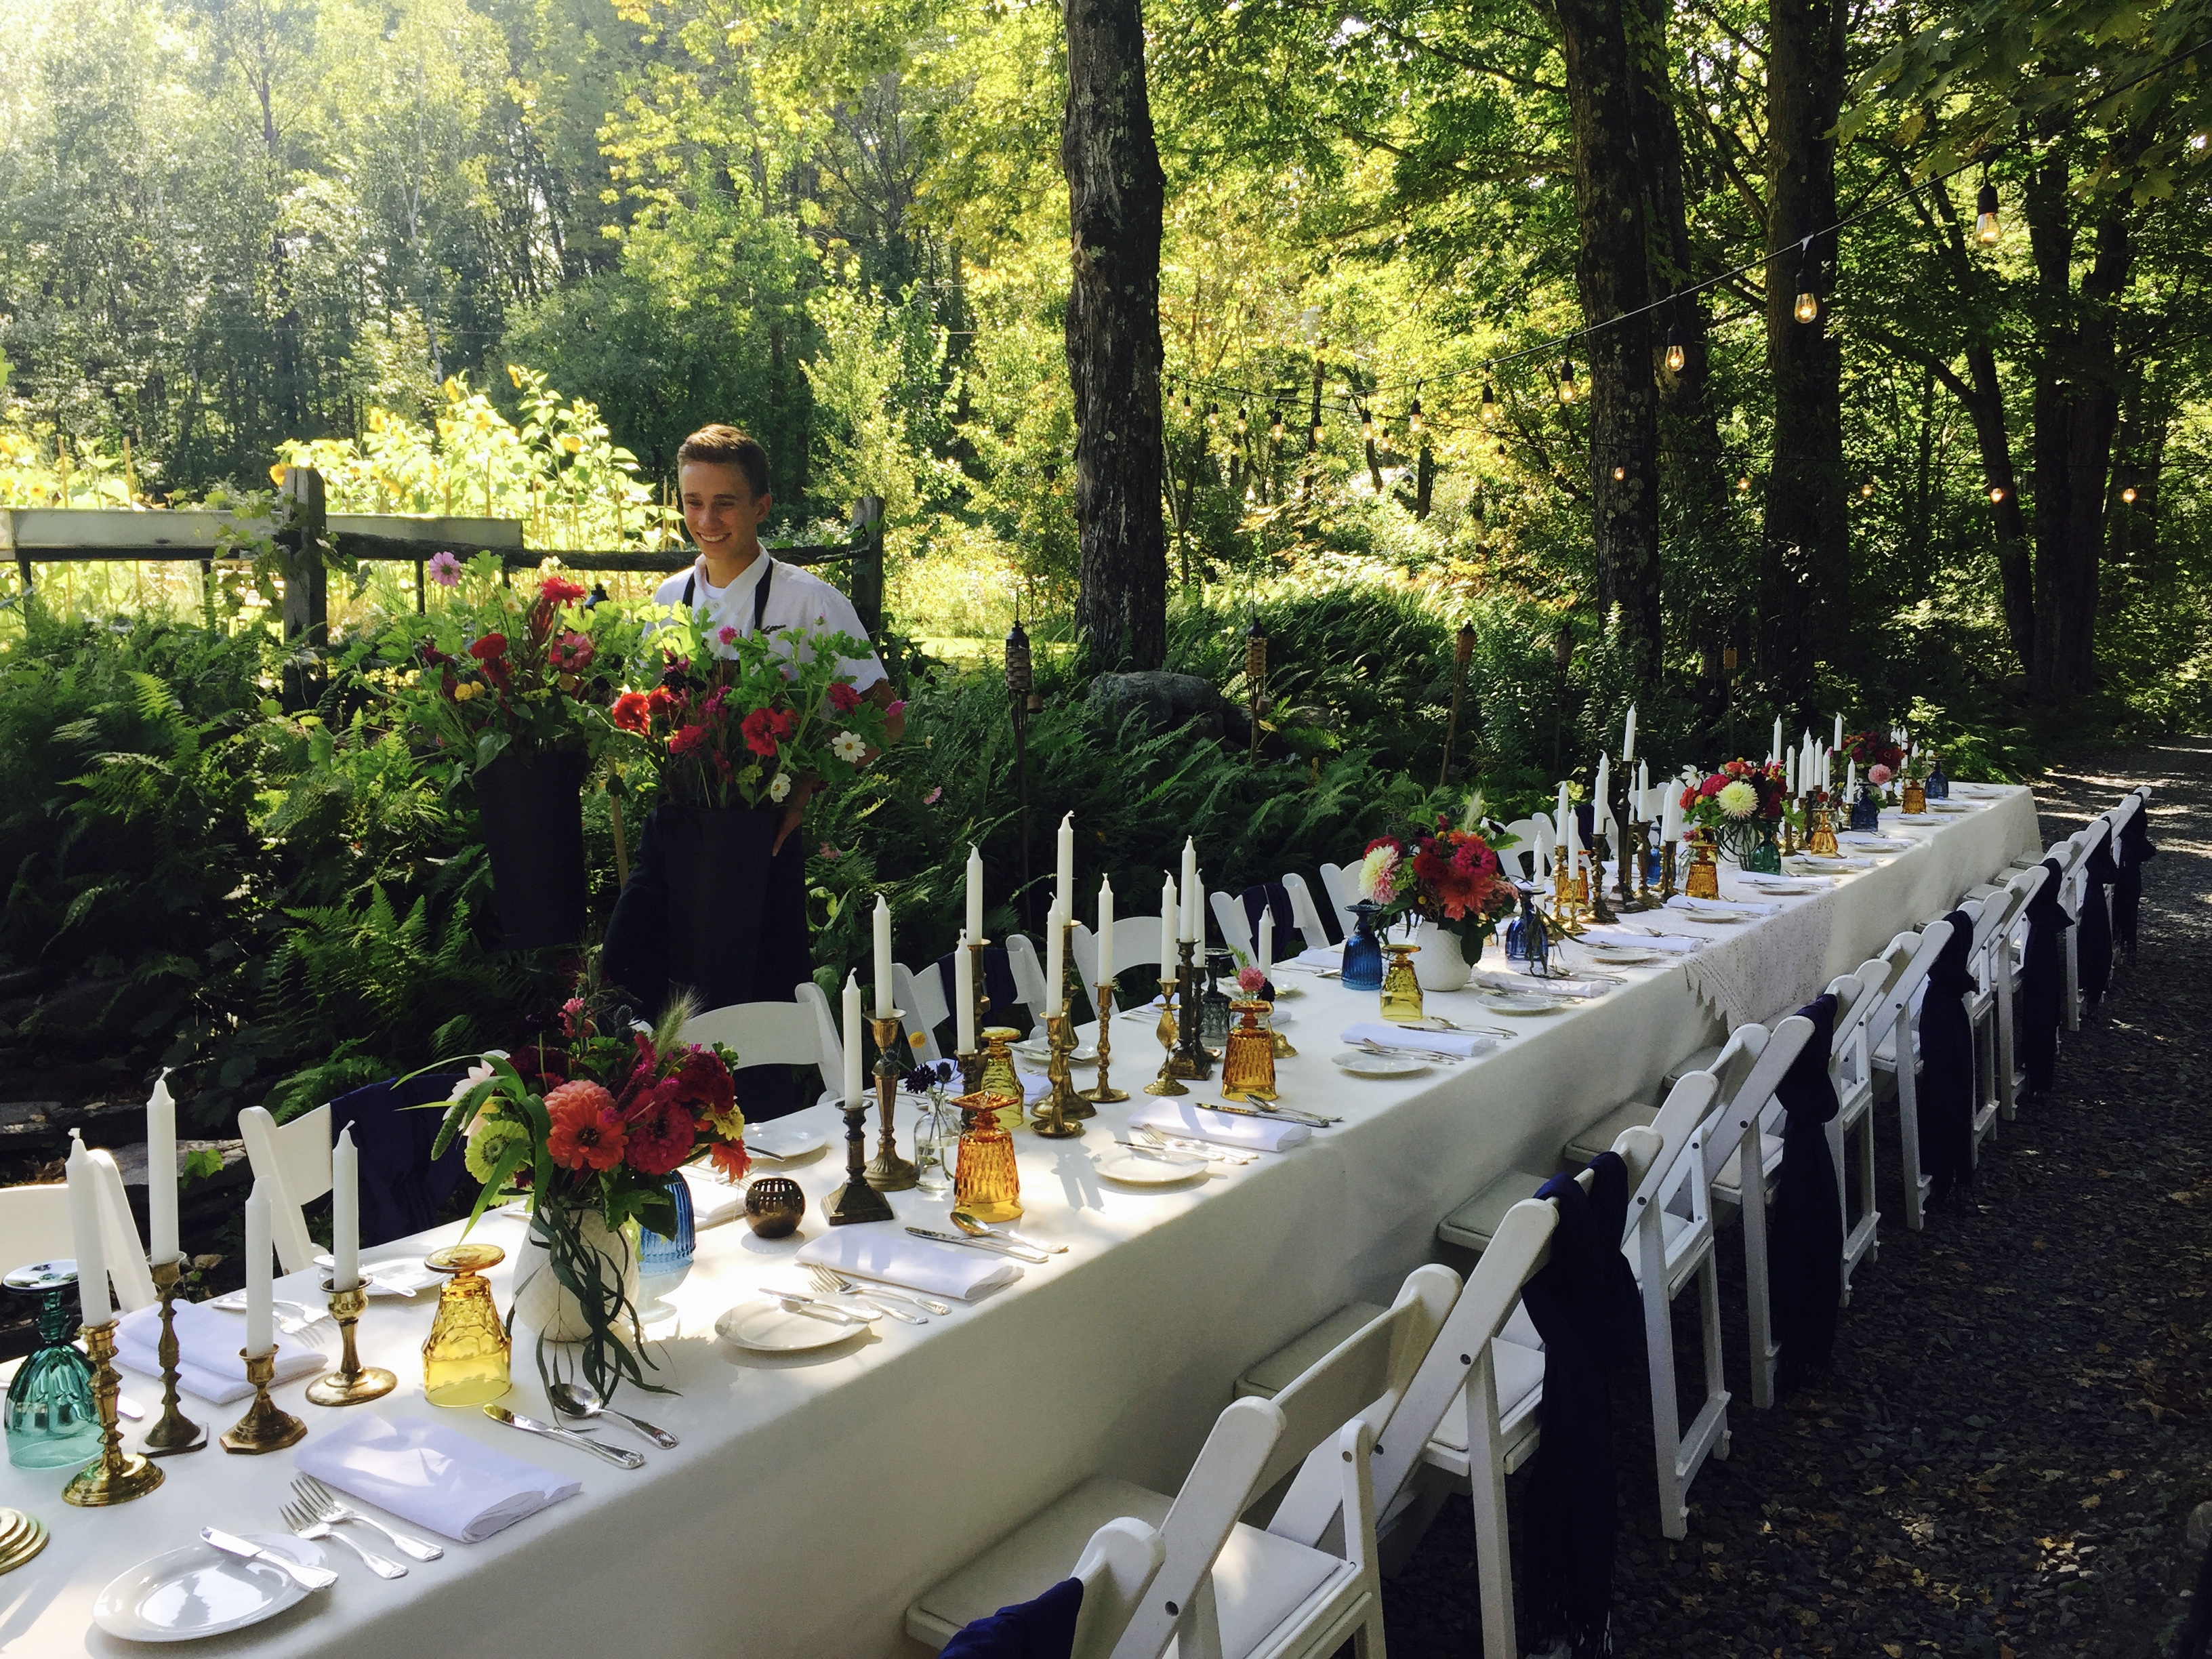 September wedding for 30 guests